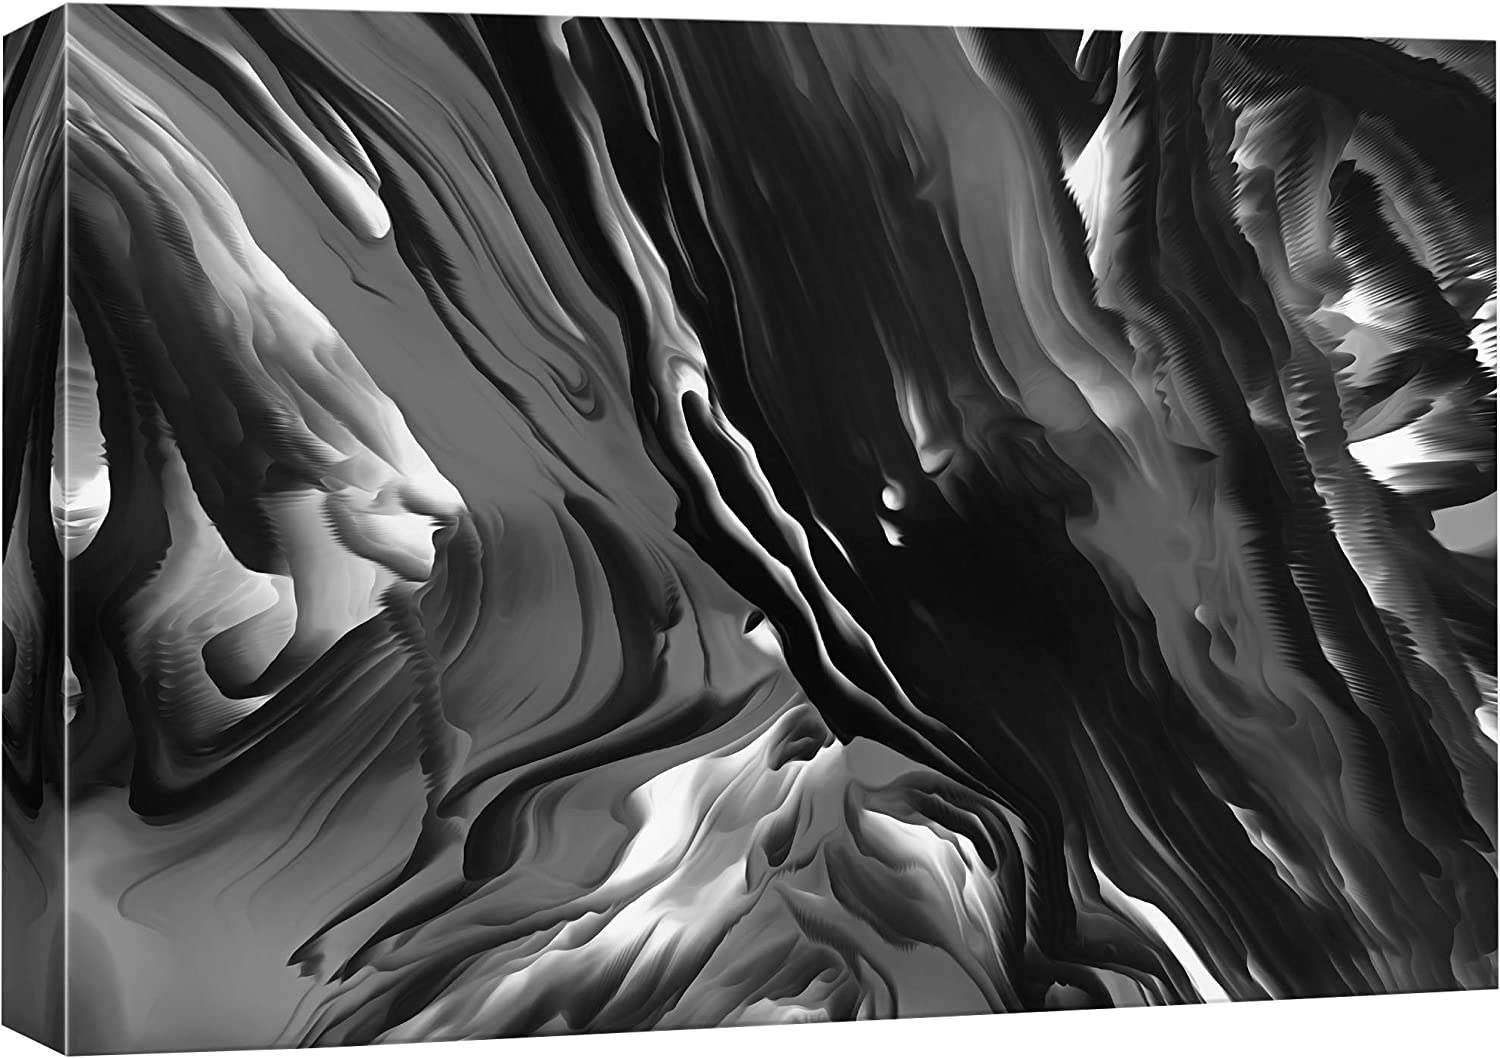 NWT Canvas Wall Art Abstract Black and White Painting Artwork for Home Prints Framed - 24x36 inches